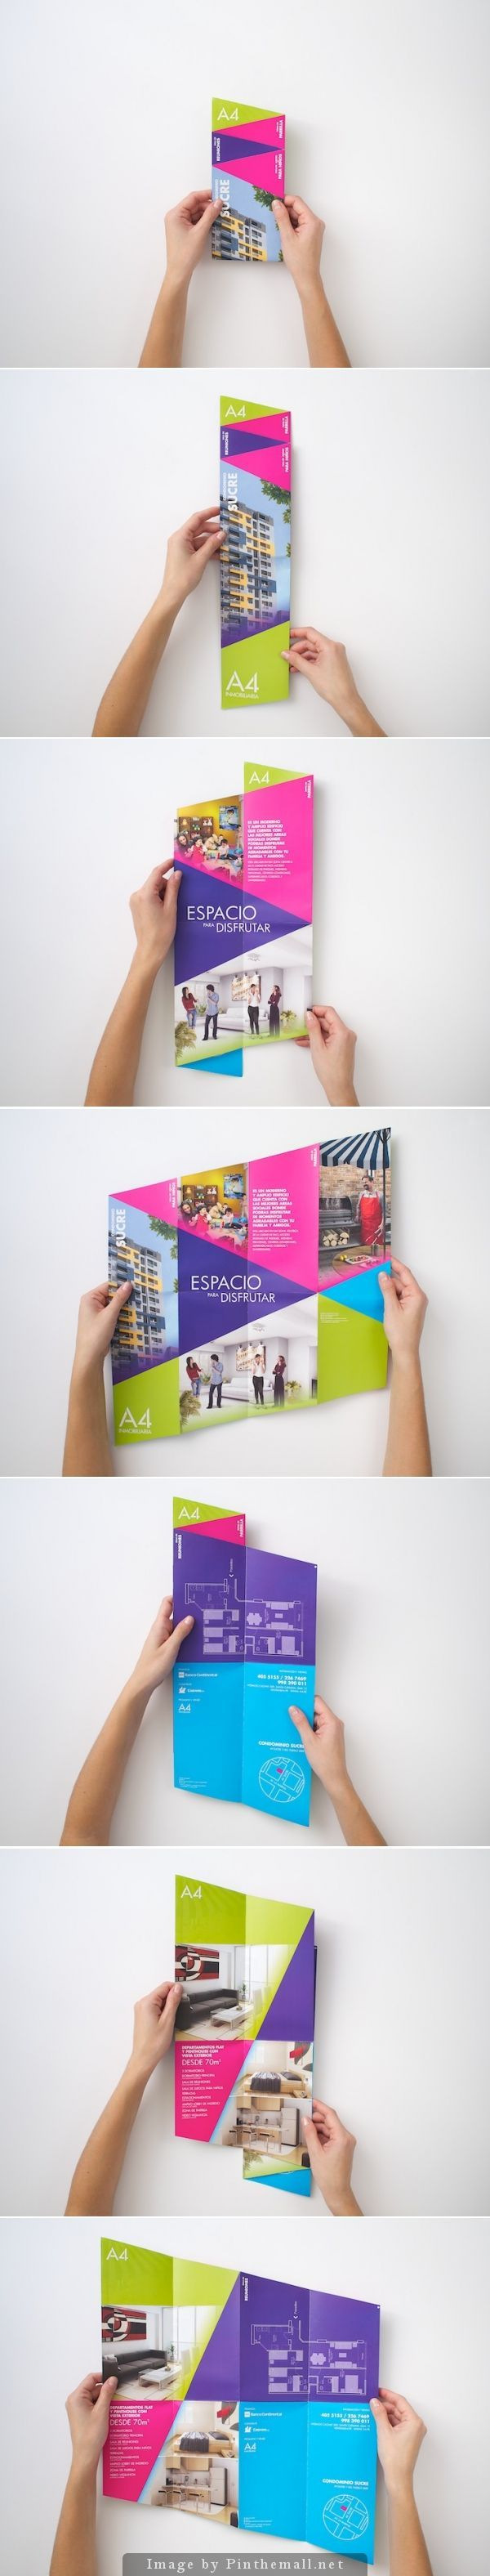 We made an unusual folding and format with colorful geometric shapes to give more fun to the information and make the piece less ordinary.     IS Creative Studio